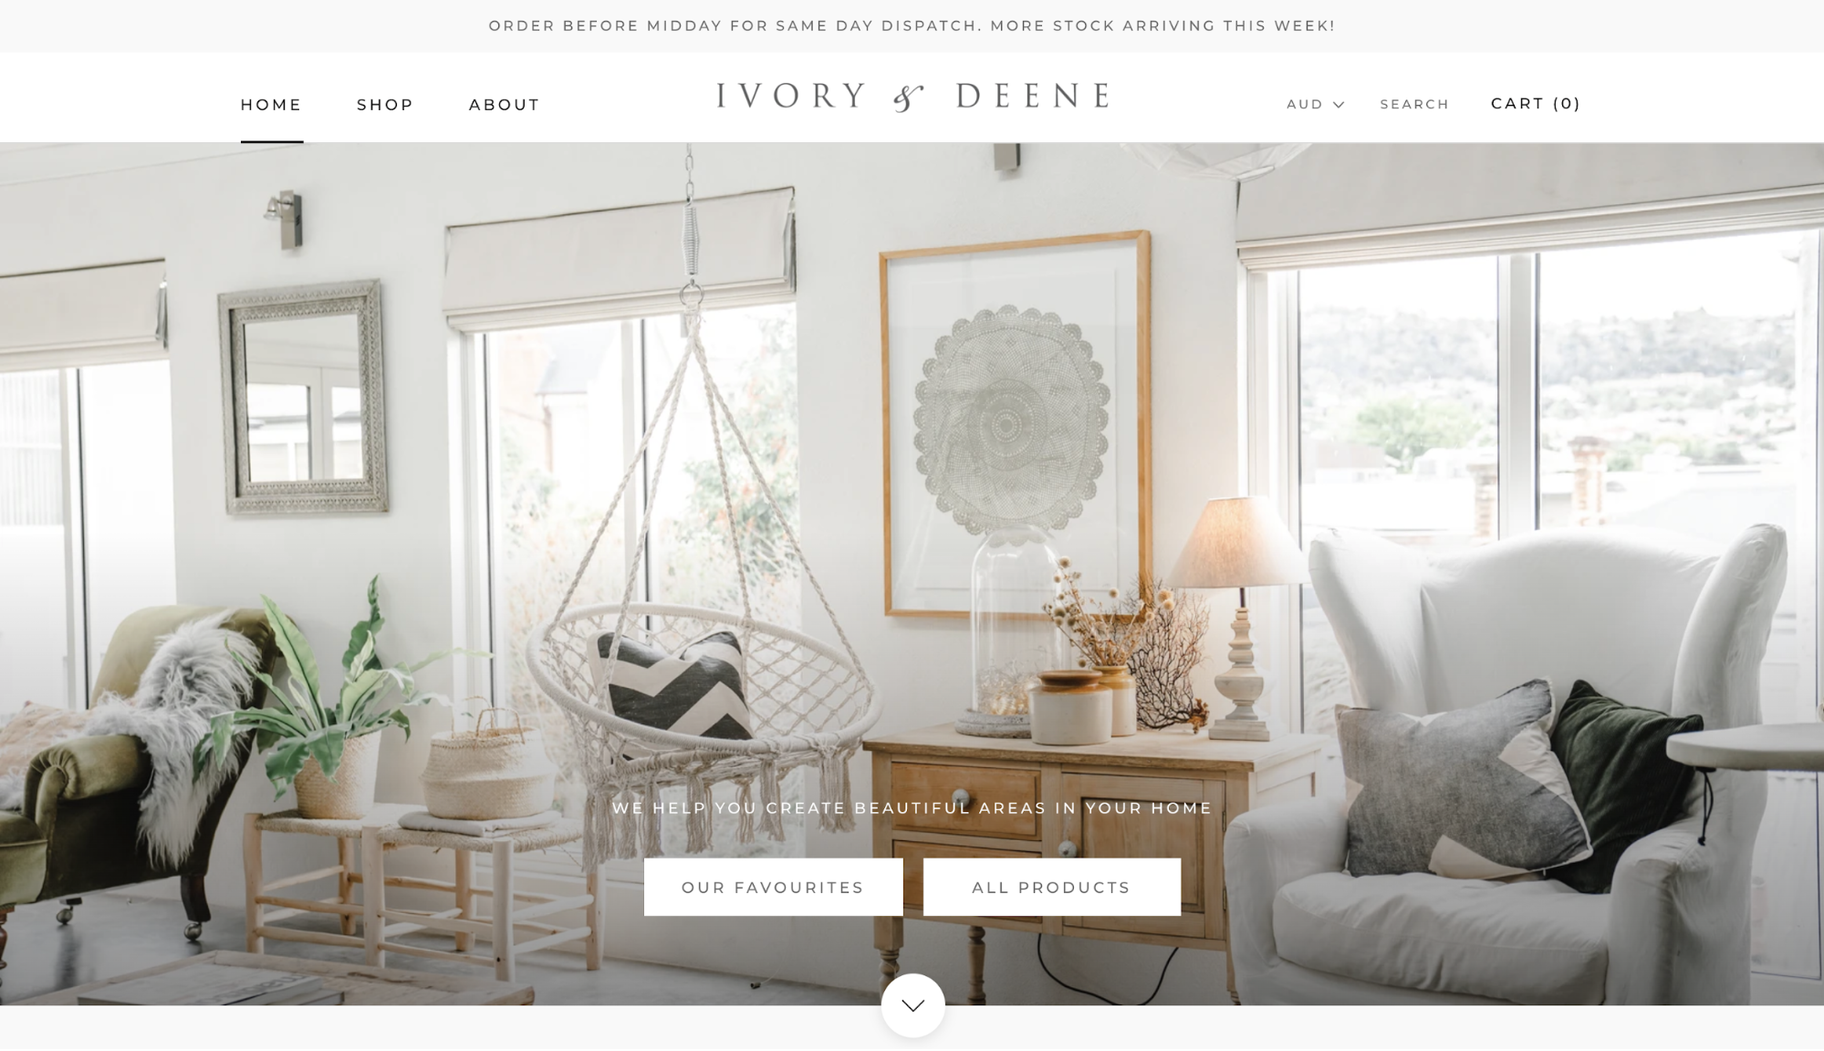 Small Business Website Example: Ivory & Deene